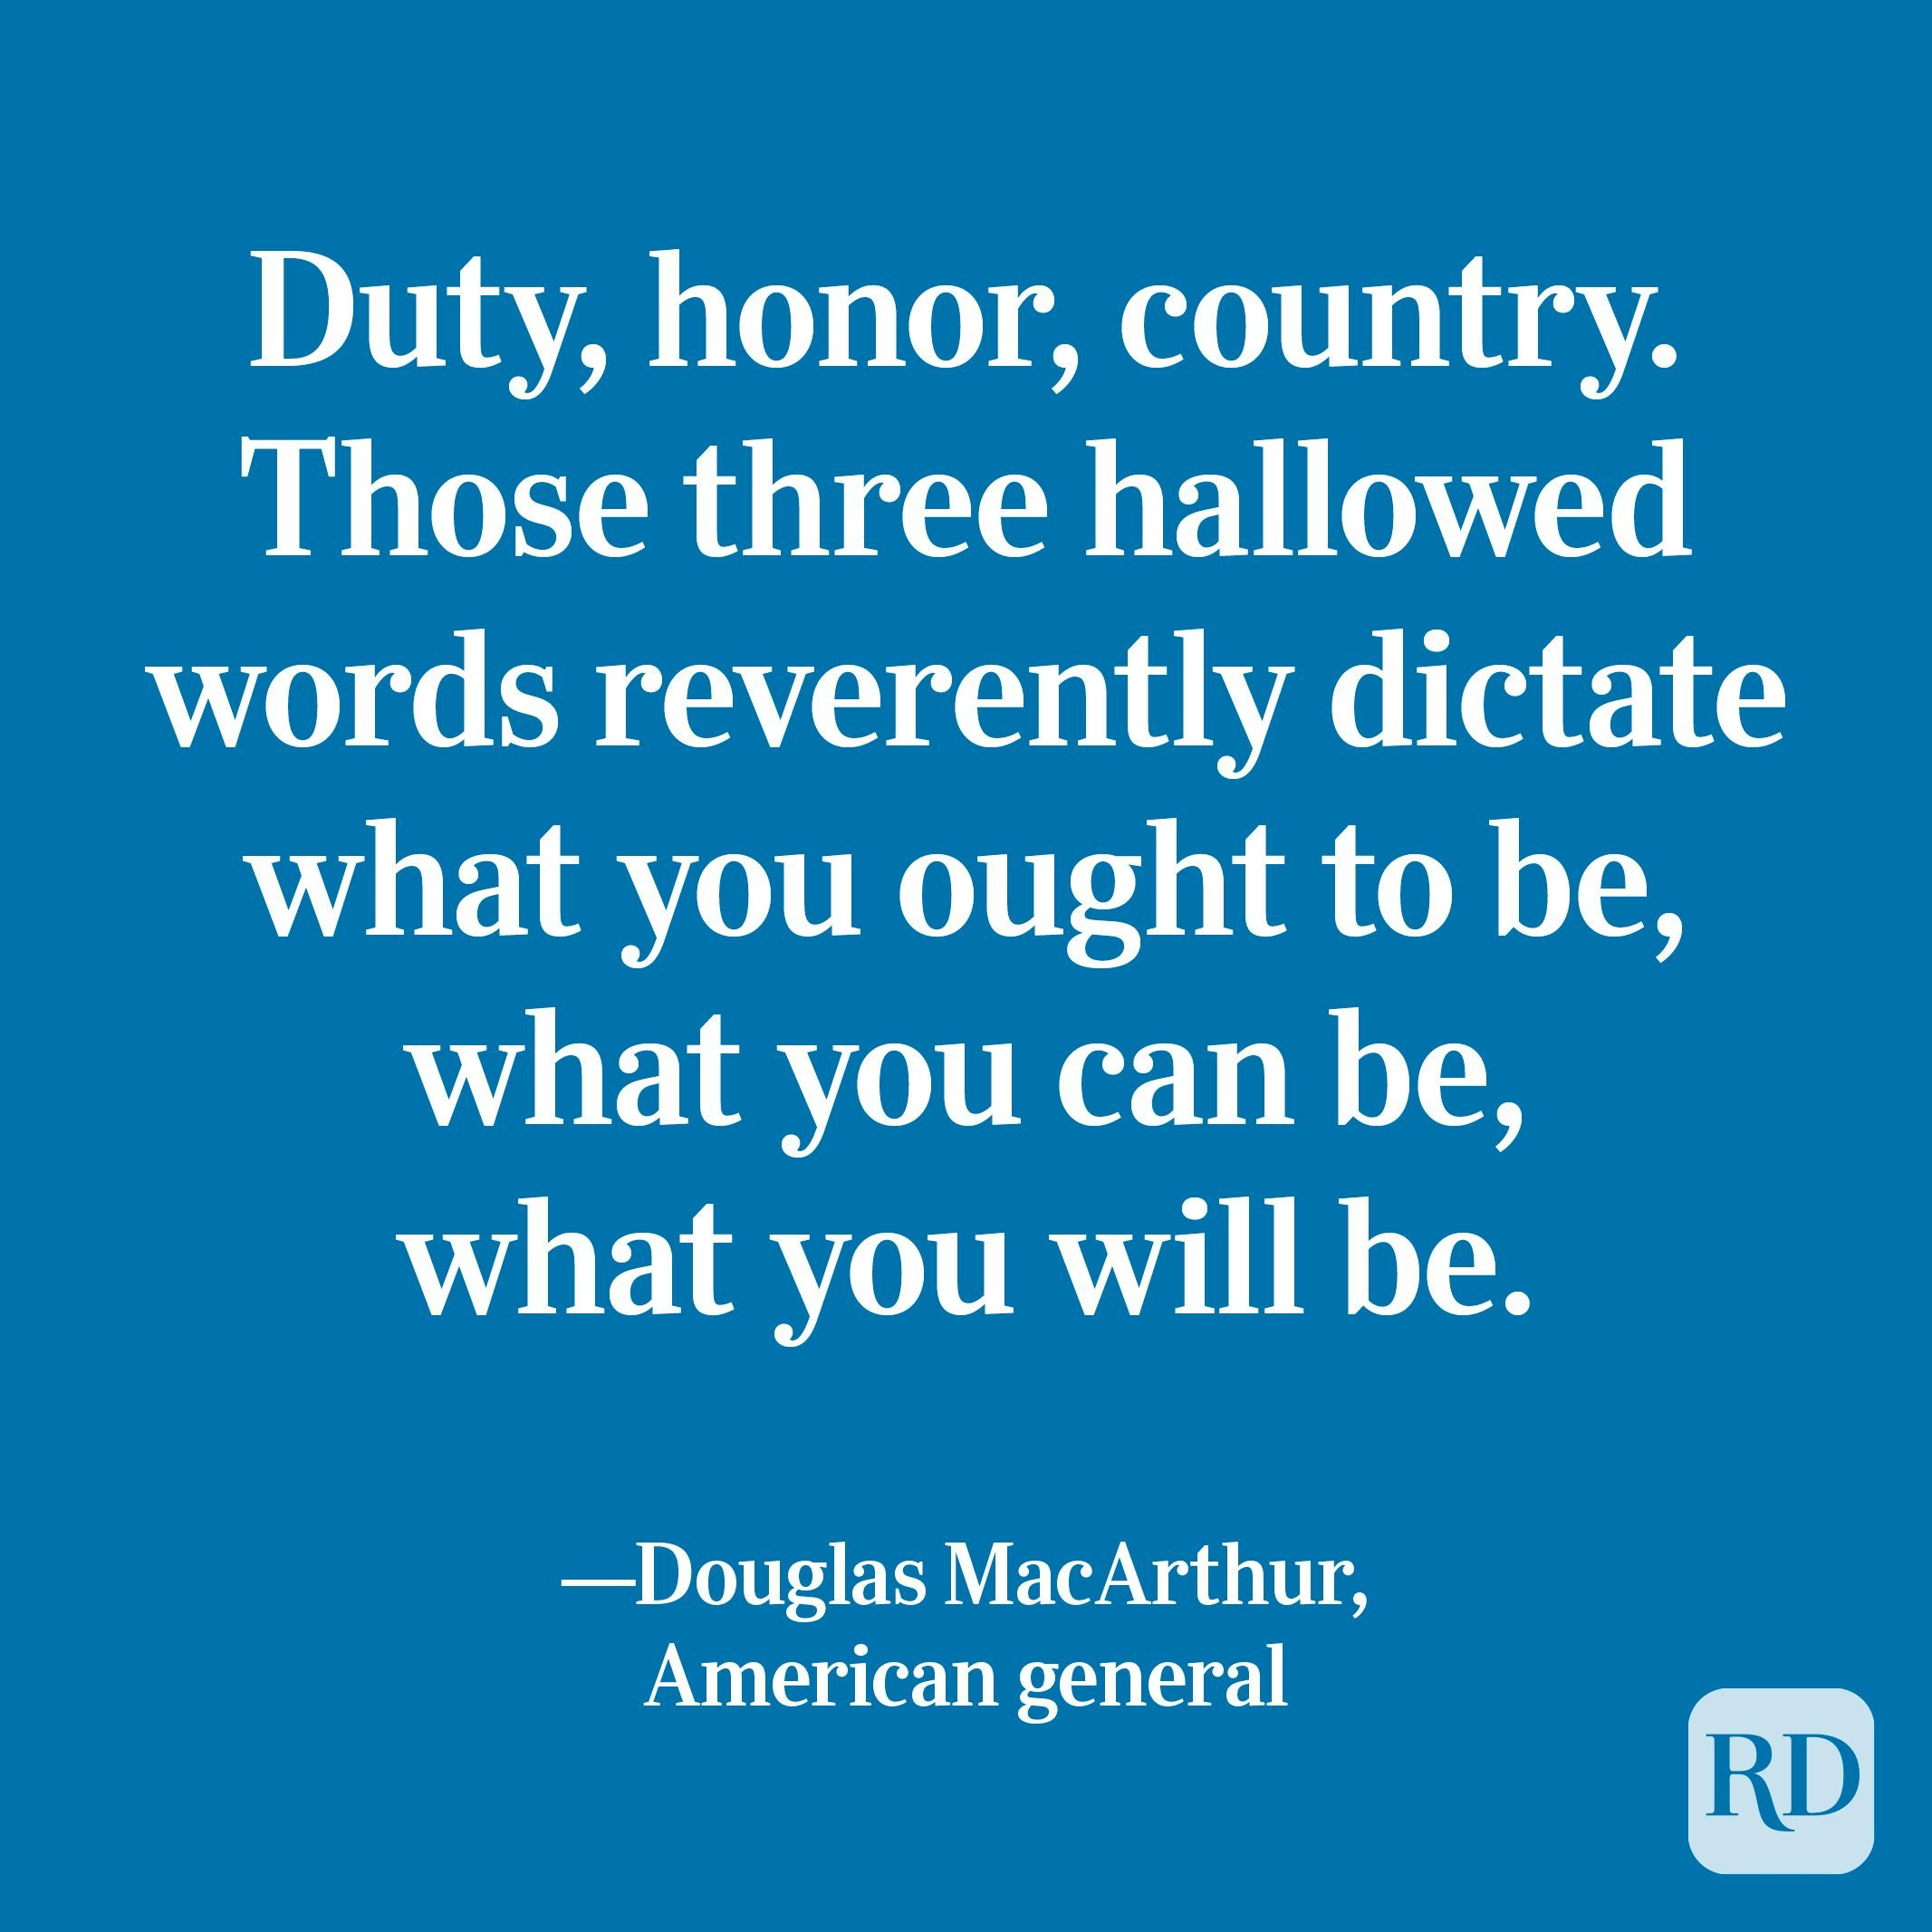 """""""Duty, honor, country. Those three hallowed words reverently dictate what you ought to be, what you can be, what you will be."""" —Douglas MacArthur, American general"""